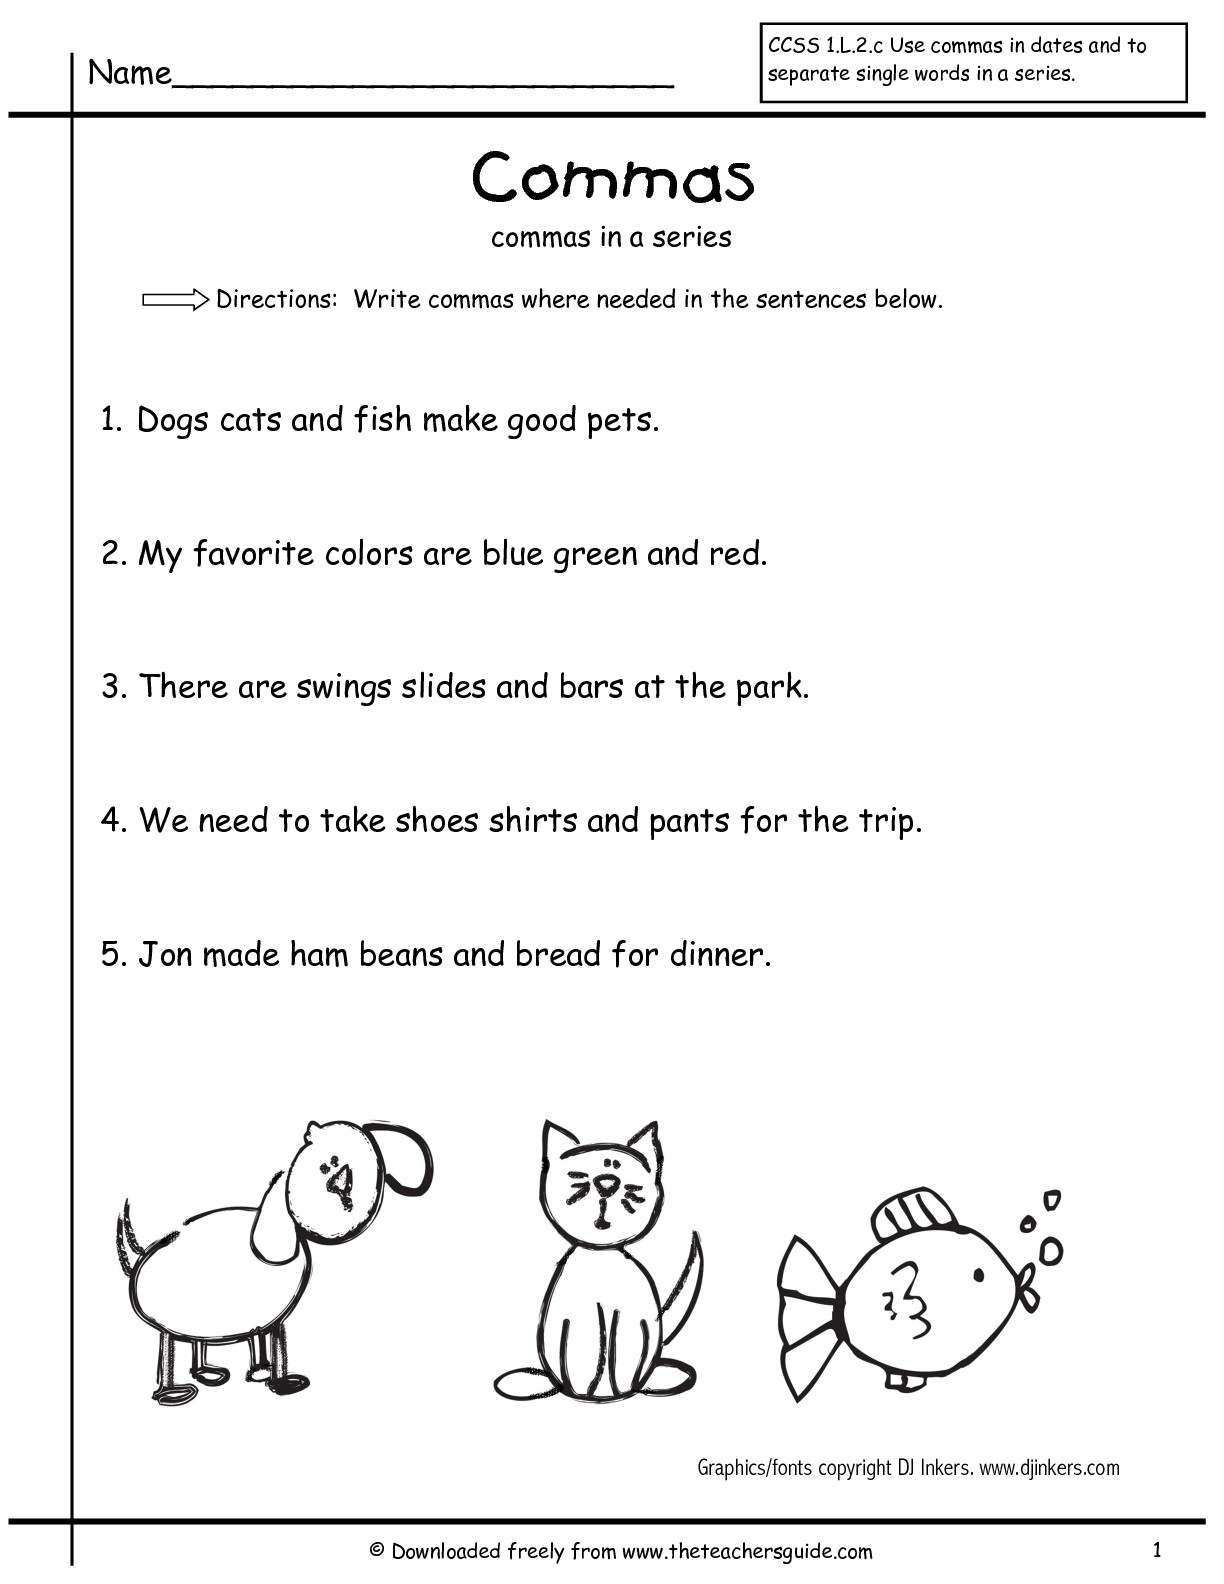 16 Best Images Of Series Comma Worksheets